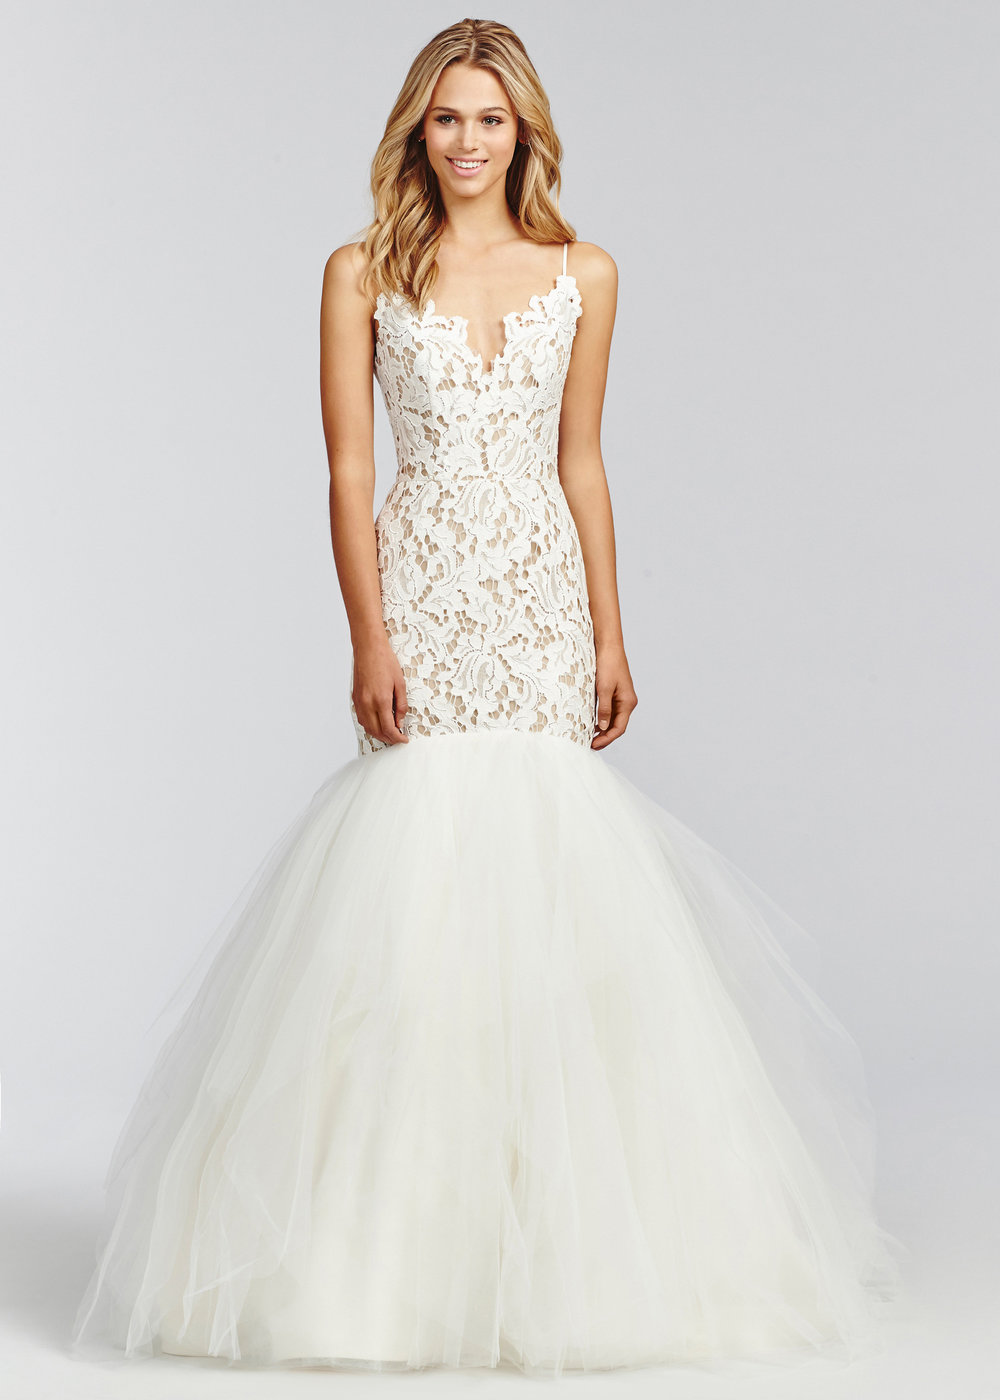 blush-hayley-paige-bridal-fall-2016-style-1650-kalea.jpg